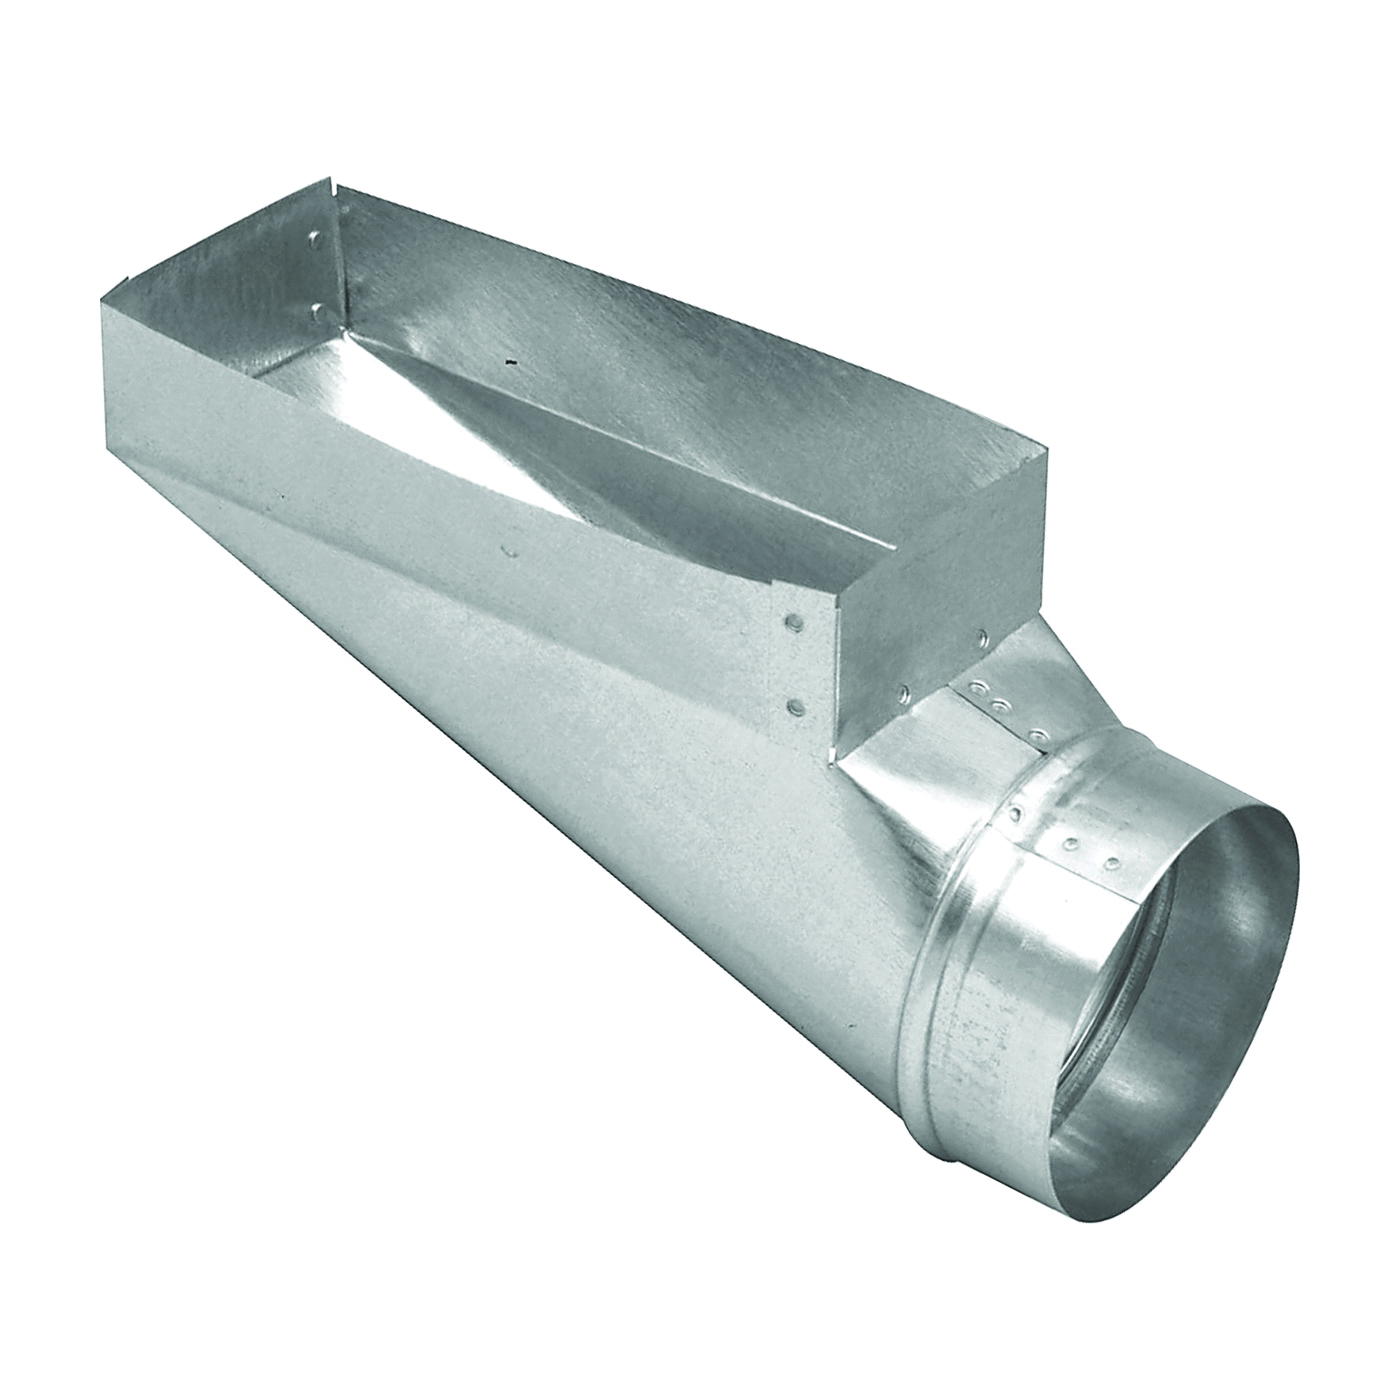 Picture of Imperial GV0657 End Boot, 3-1/4 in L, 10 in W, 5 in H, 90 deg Angle, Steel, Galvanized